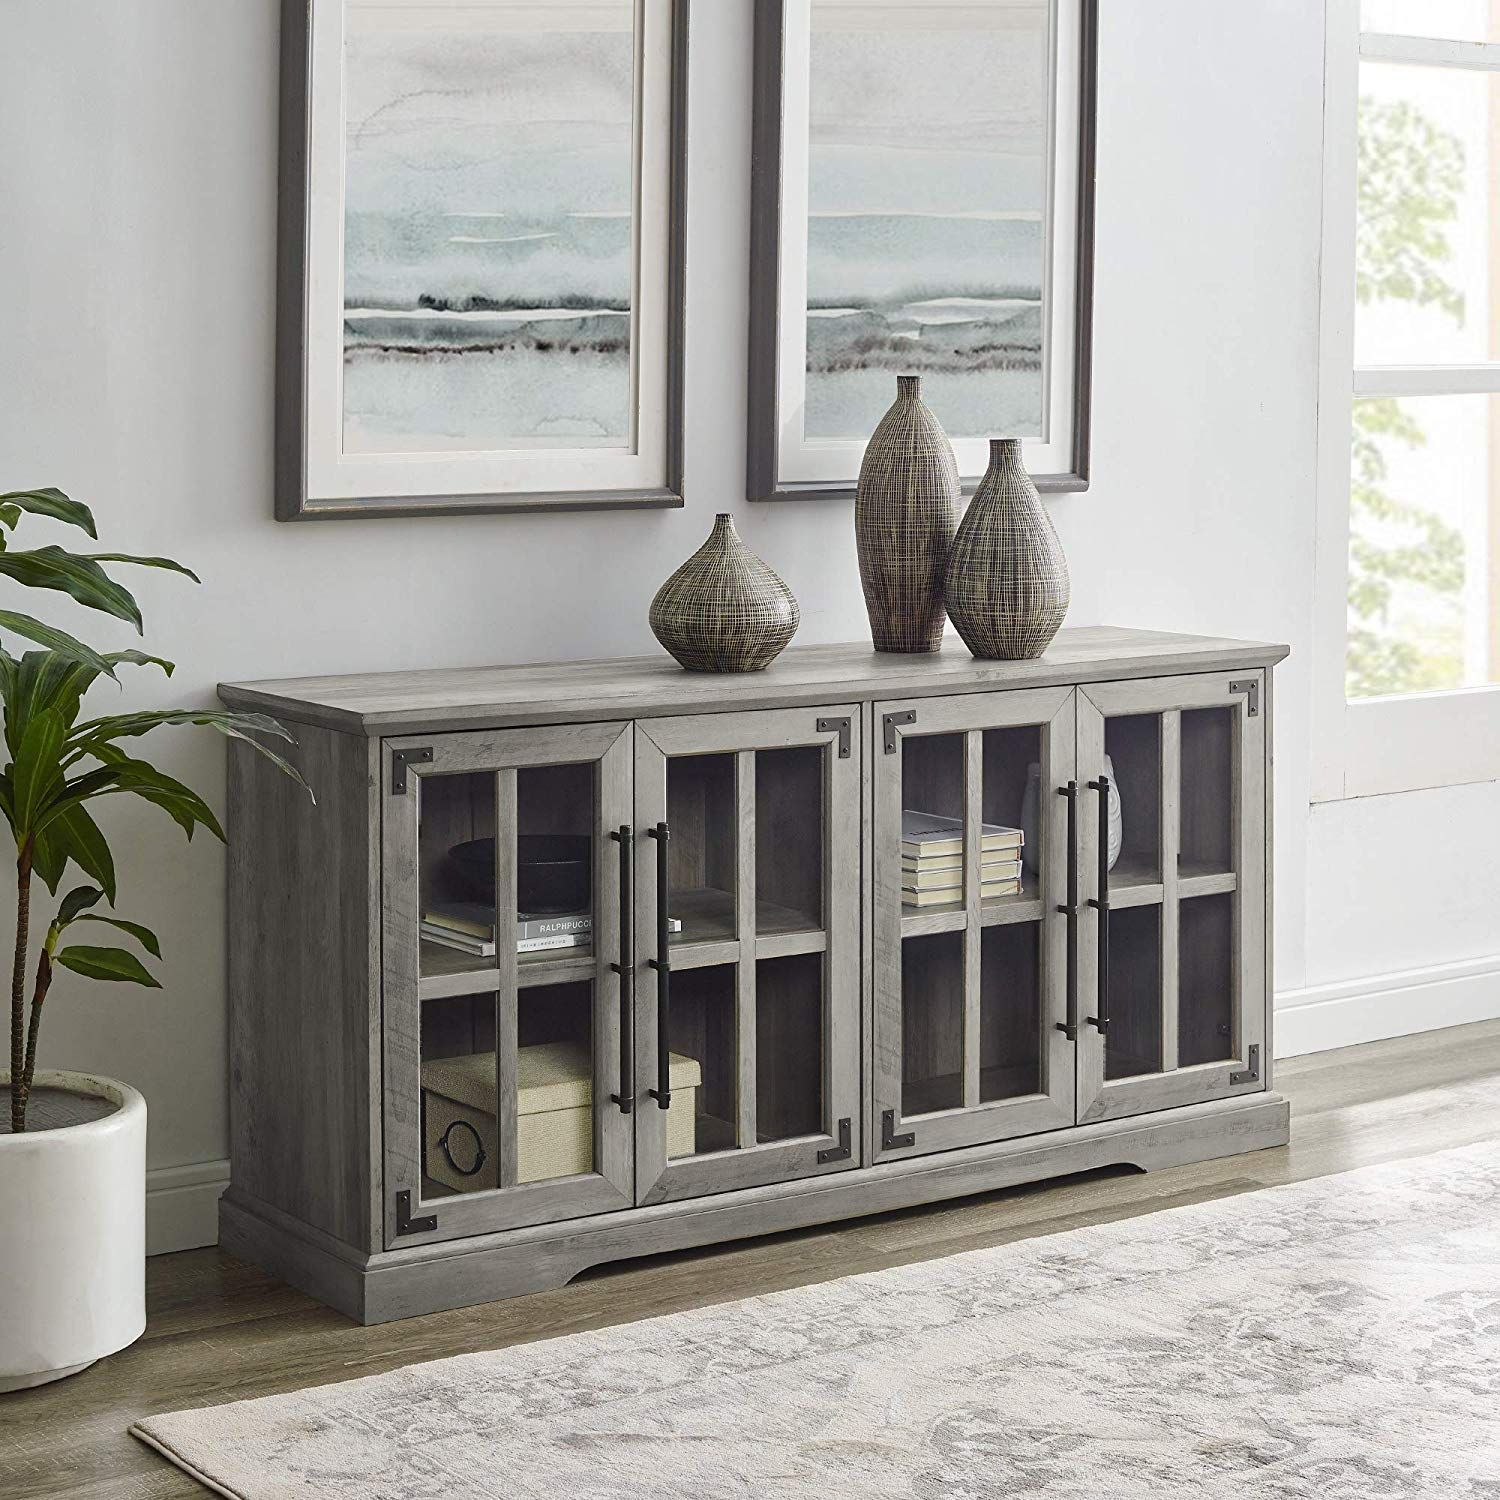 Best Rustic TV Stands and Farmhouse Entertainment Centers